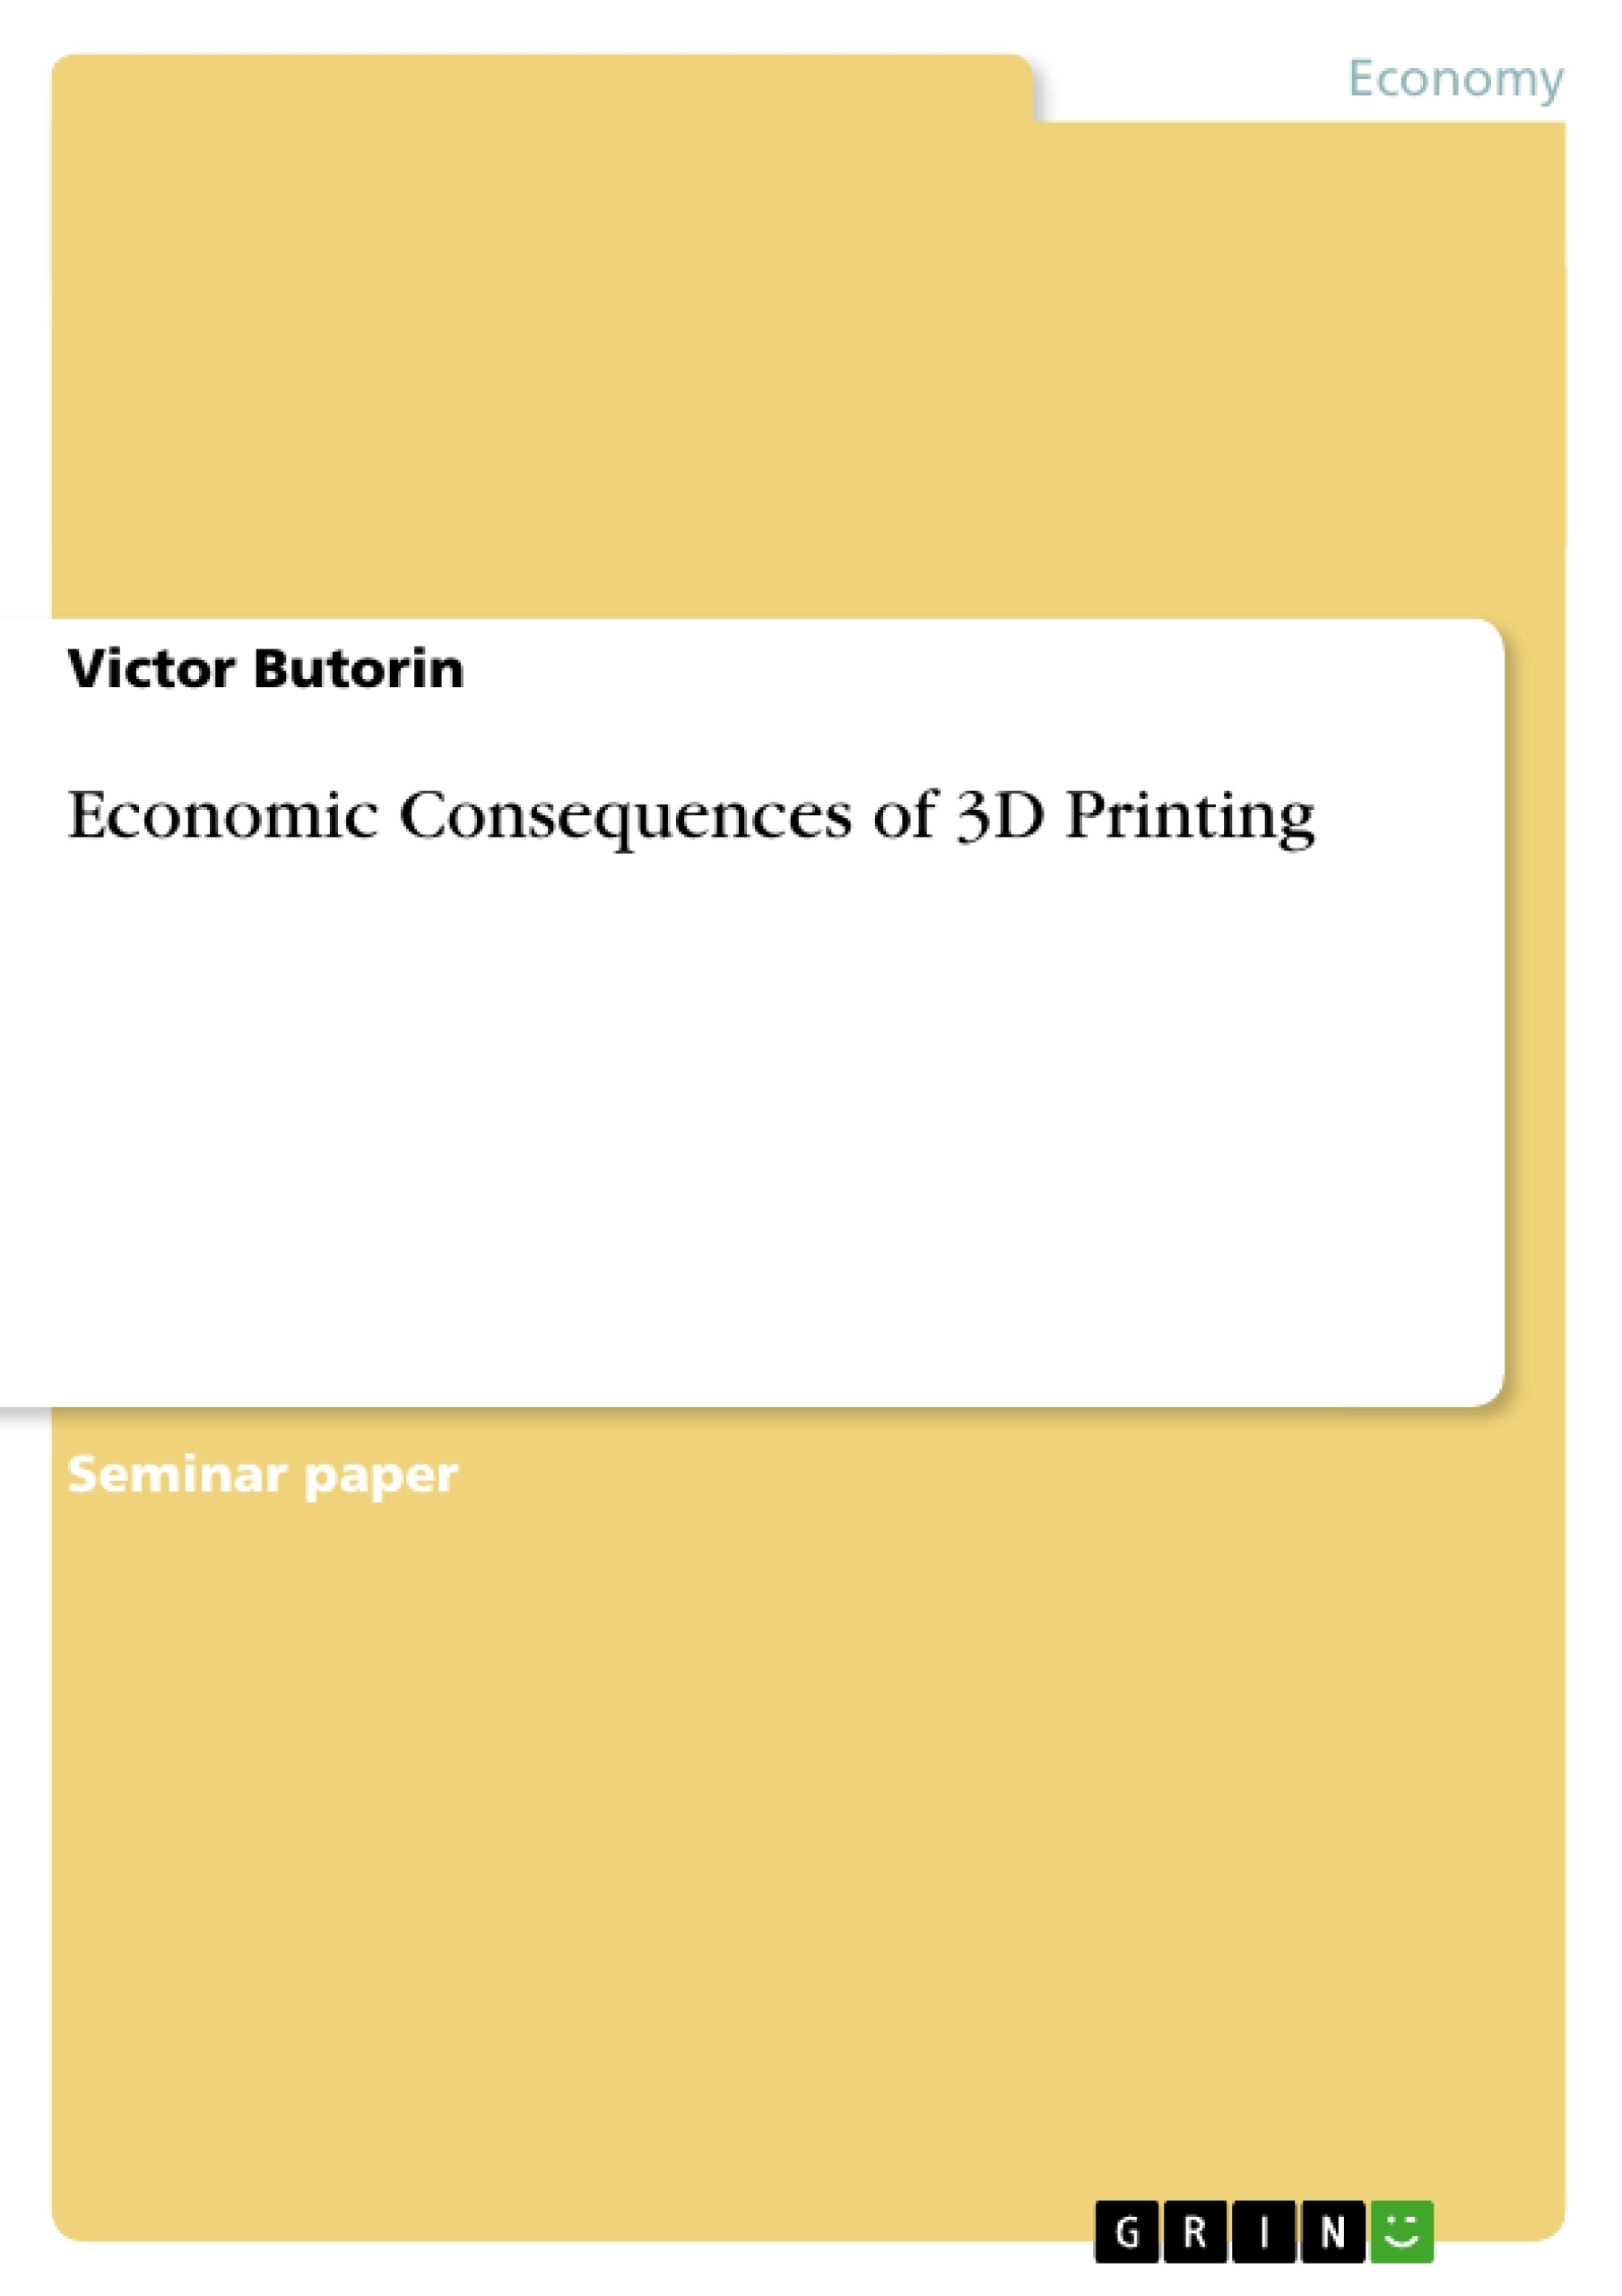 Title: Economic Consequences of 3D Printing